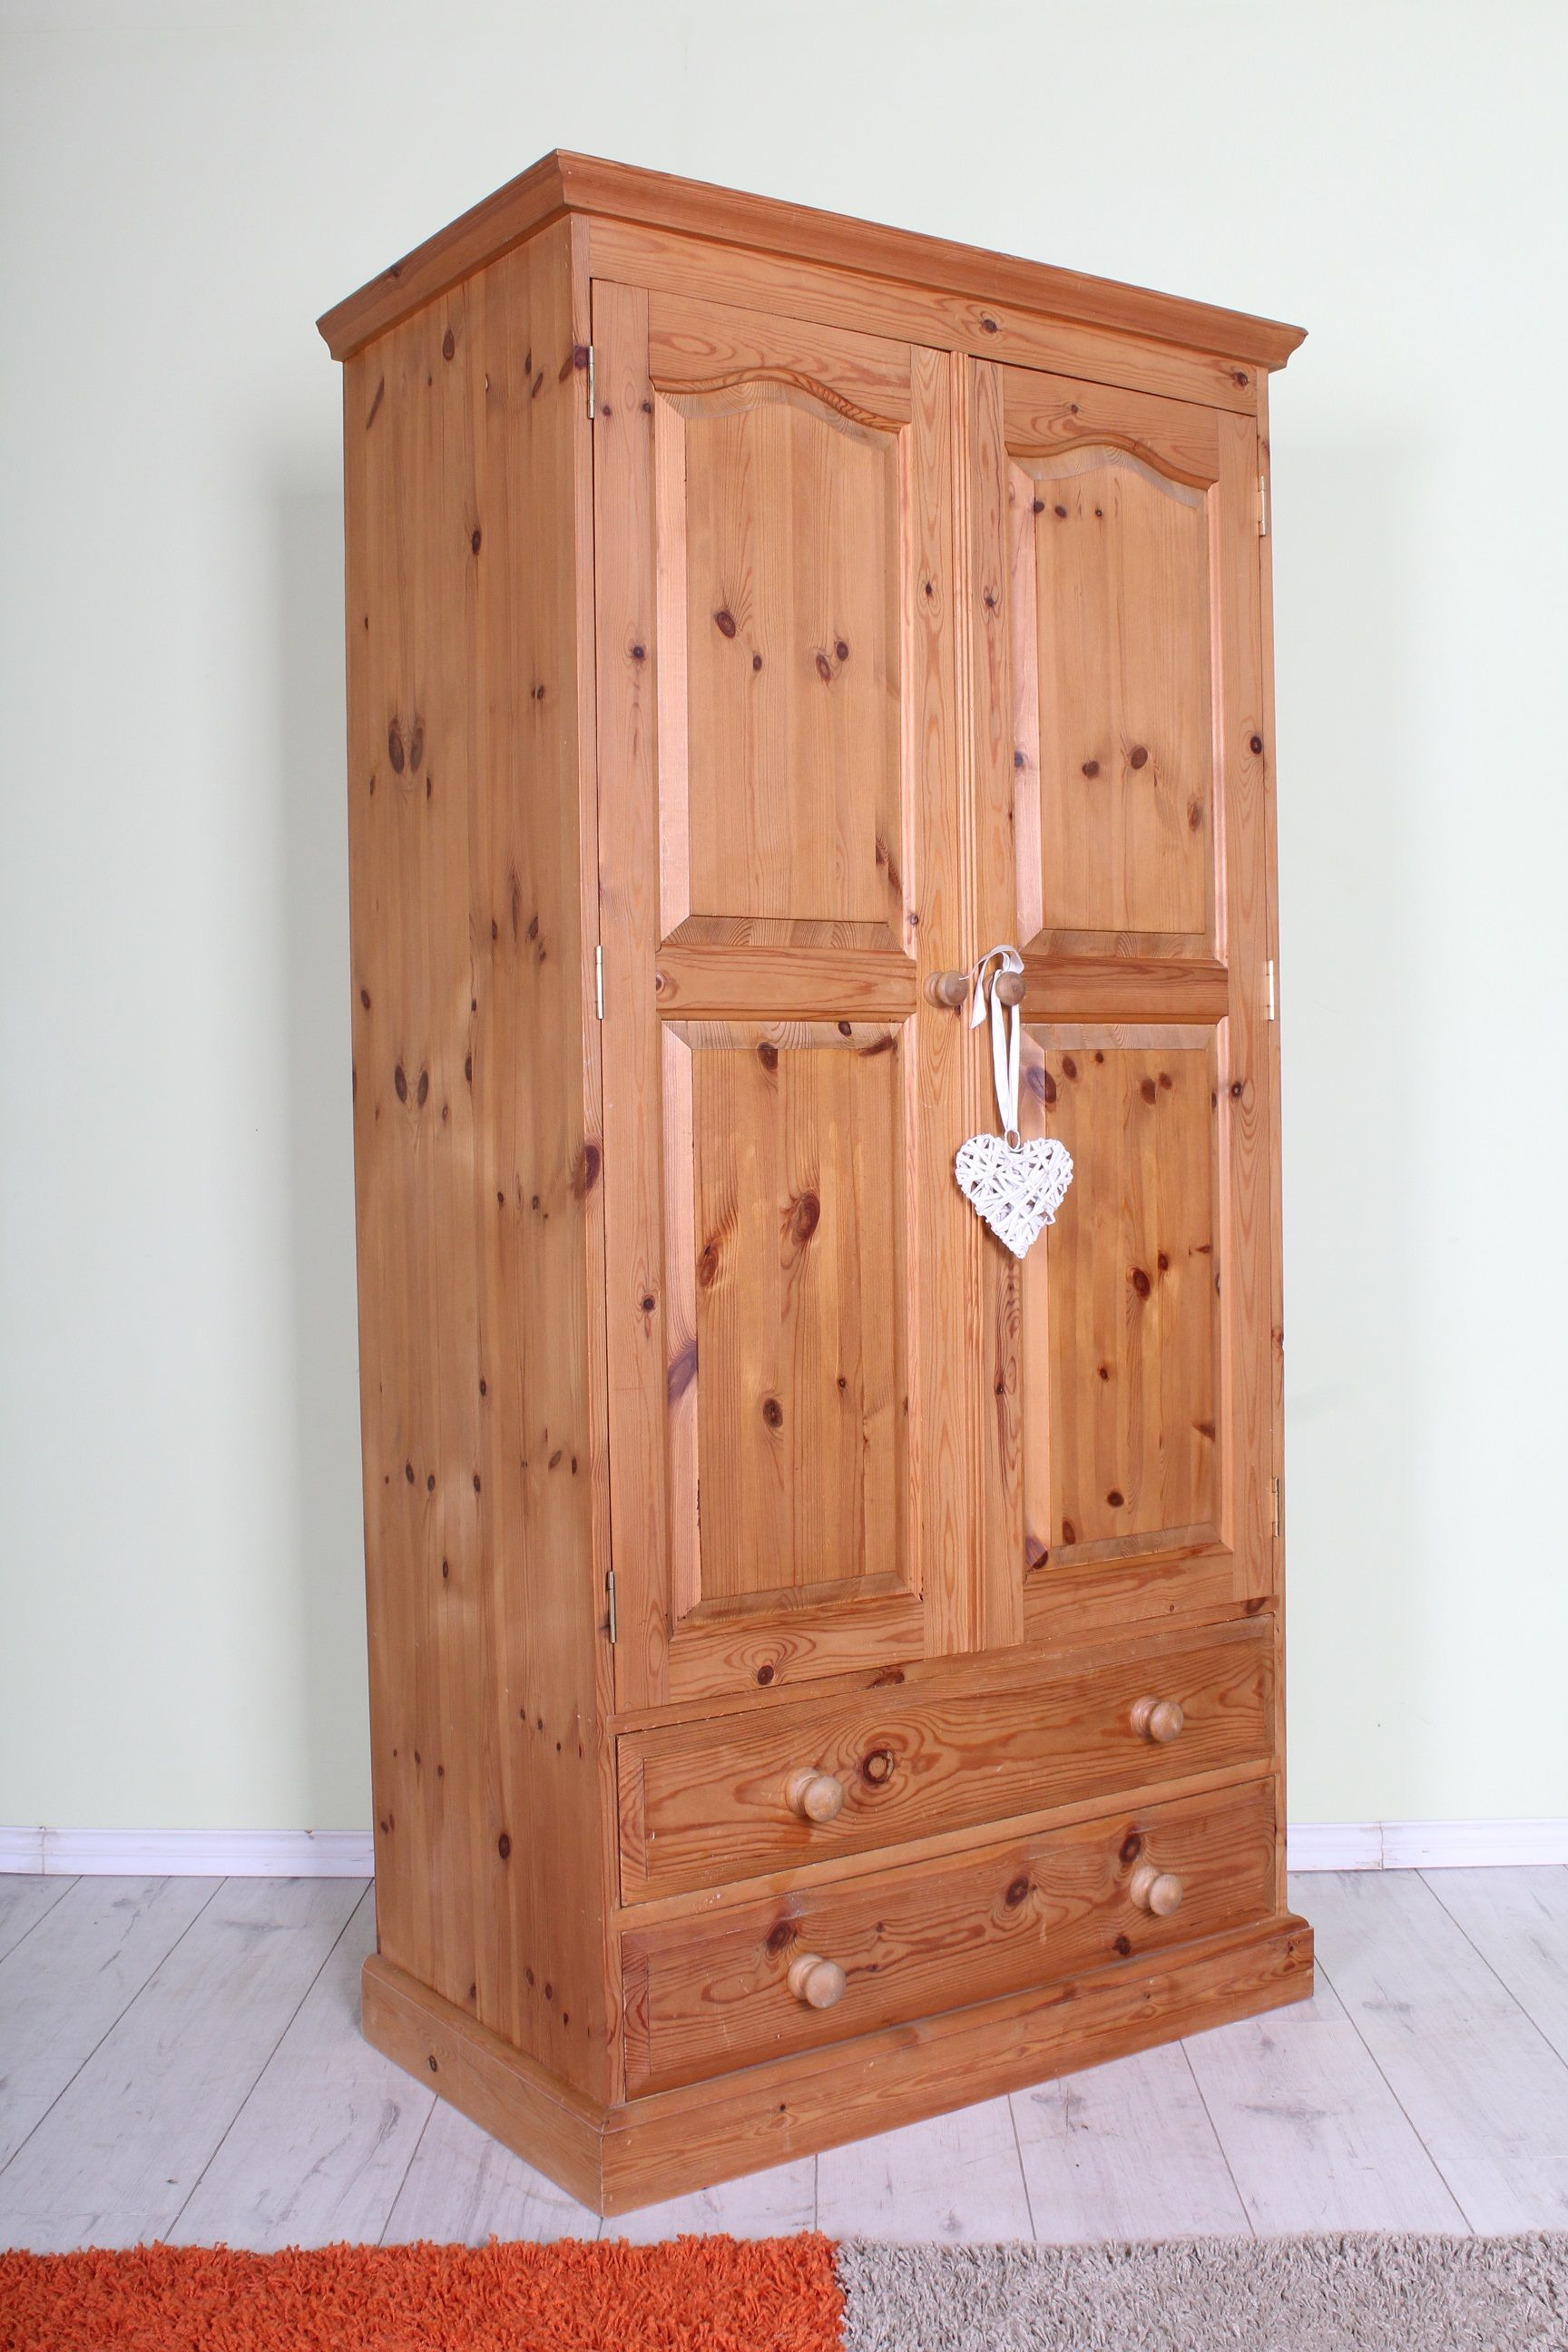 225 Pine wardrobe with 2 drawers all tongue & groove with dovetail